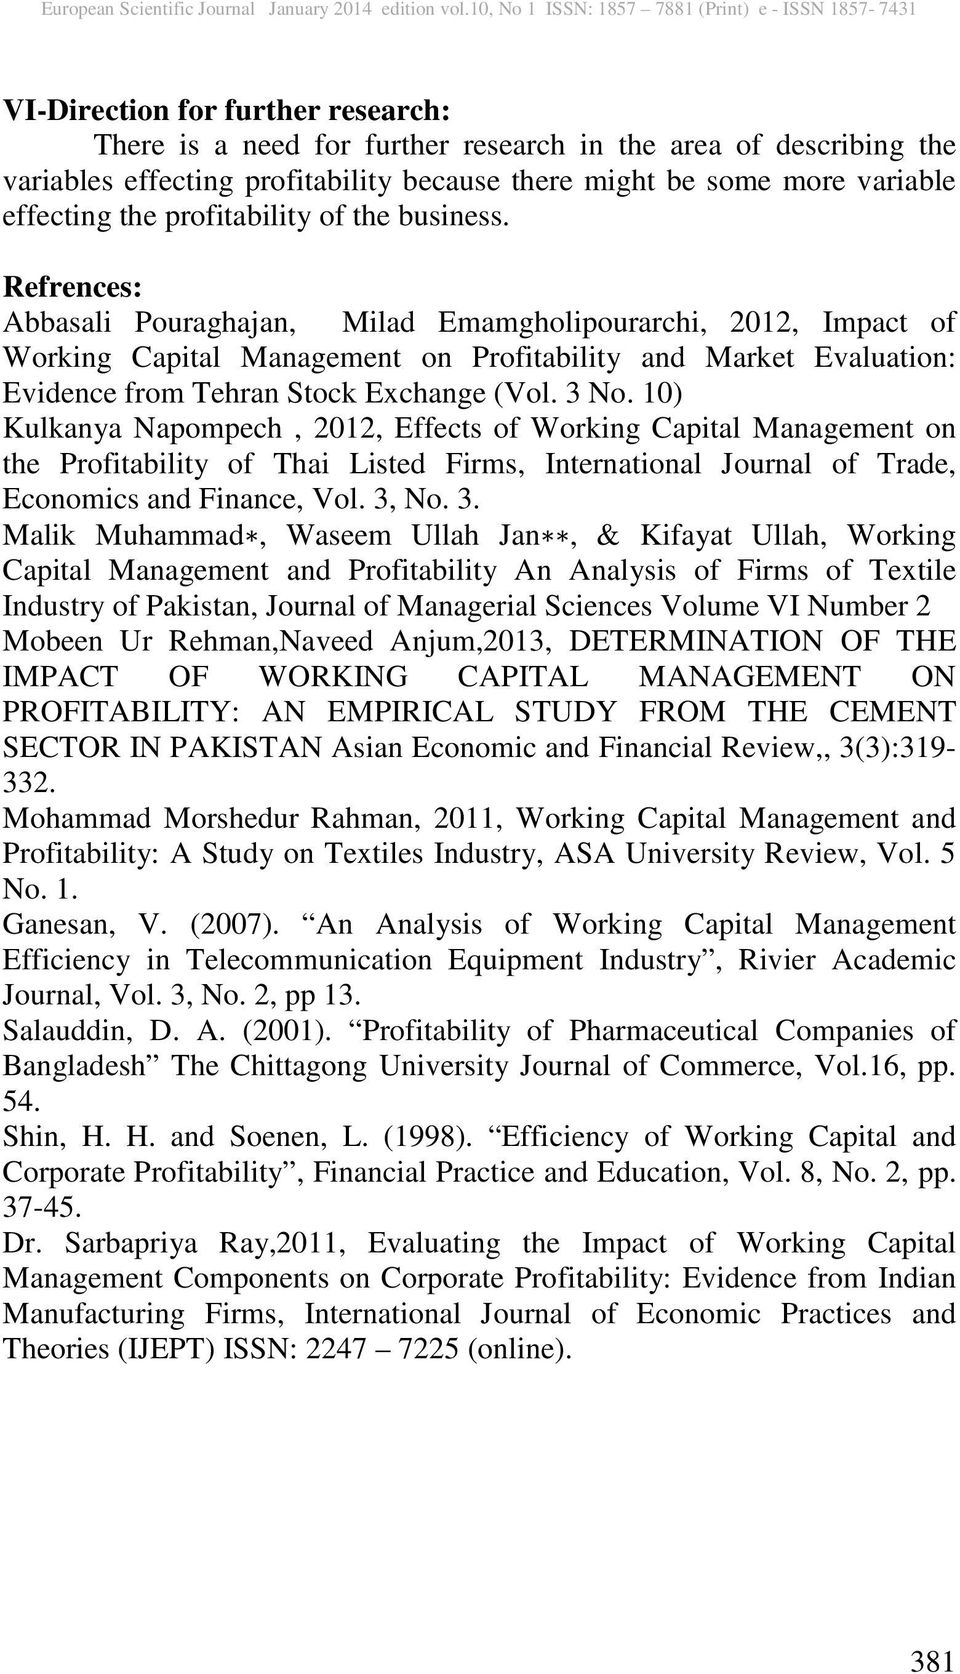 Refrences: Abbasali Pouraghajan, Milad Emamgholipourarchi, 2012, Impact of Working Capital Management on Profitability and Market Evaluation: Evidence from Tehran Stock Exchange (Vol. 3 No.